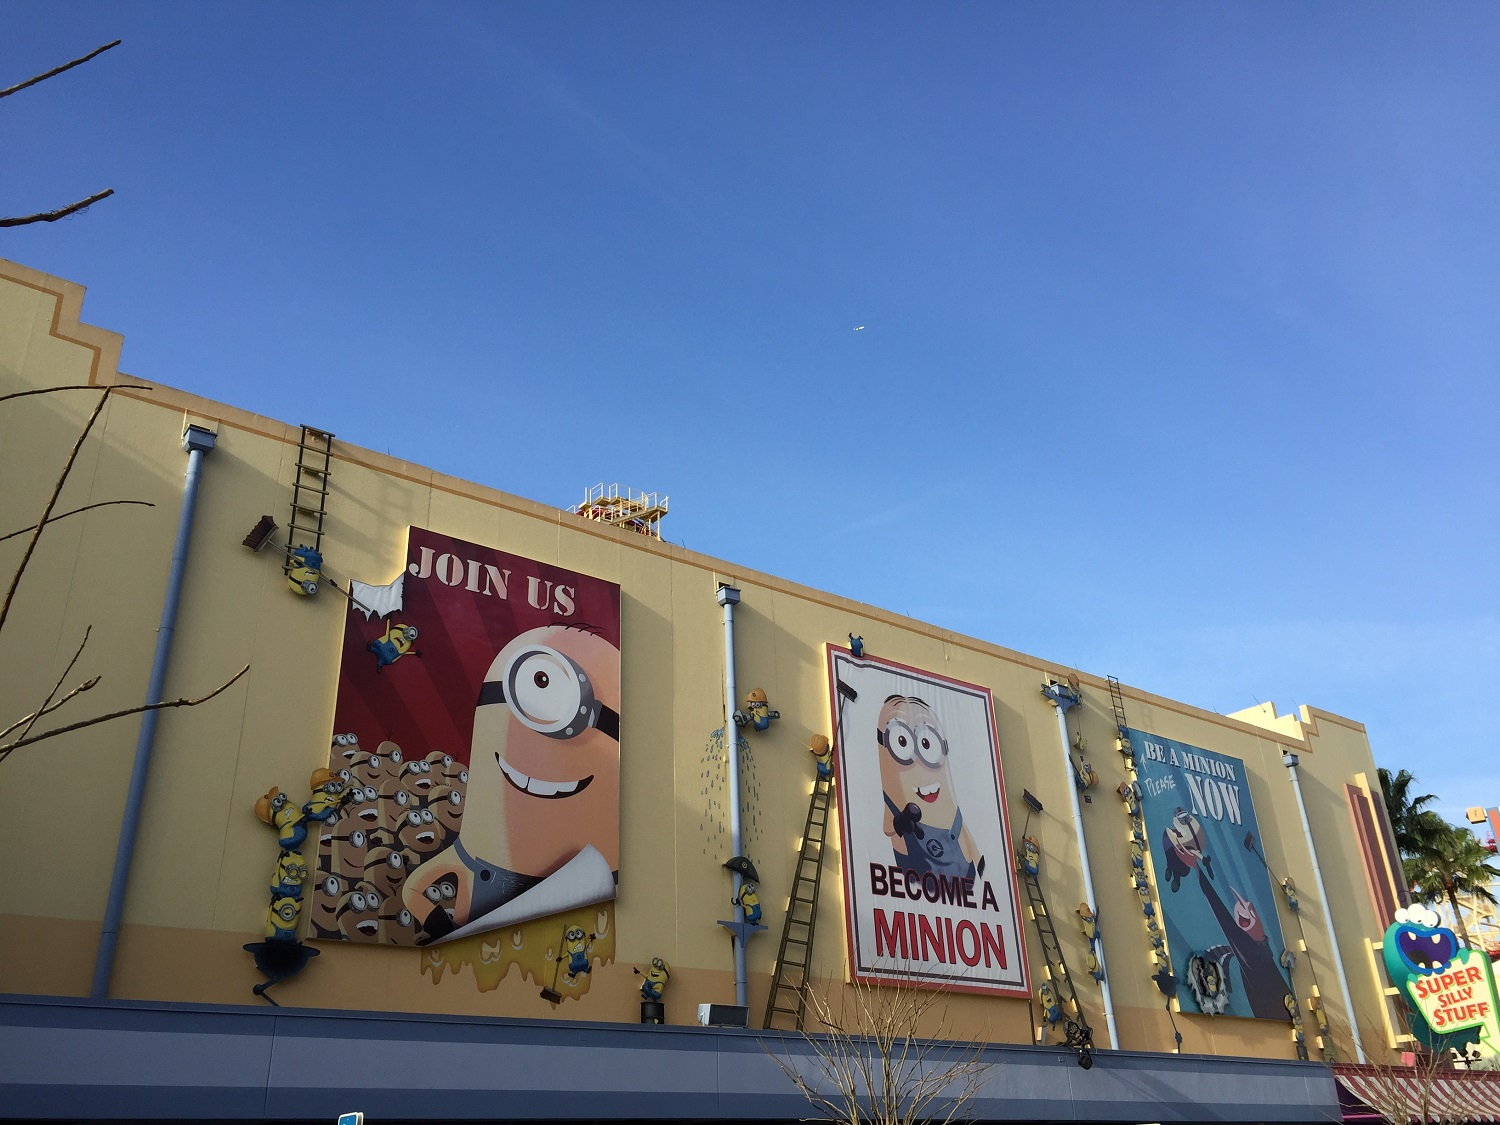 Guests are invited to Become a Minion on the Despicable Me Minion Mayhem ride.